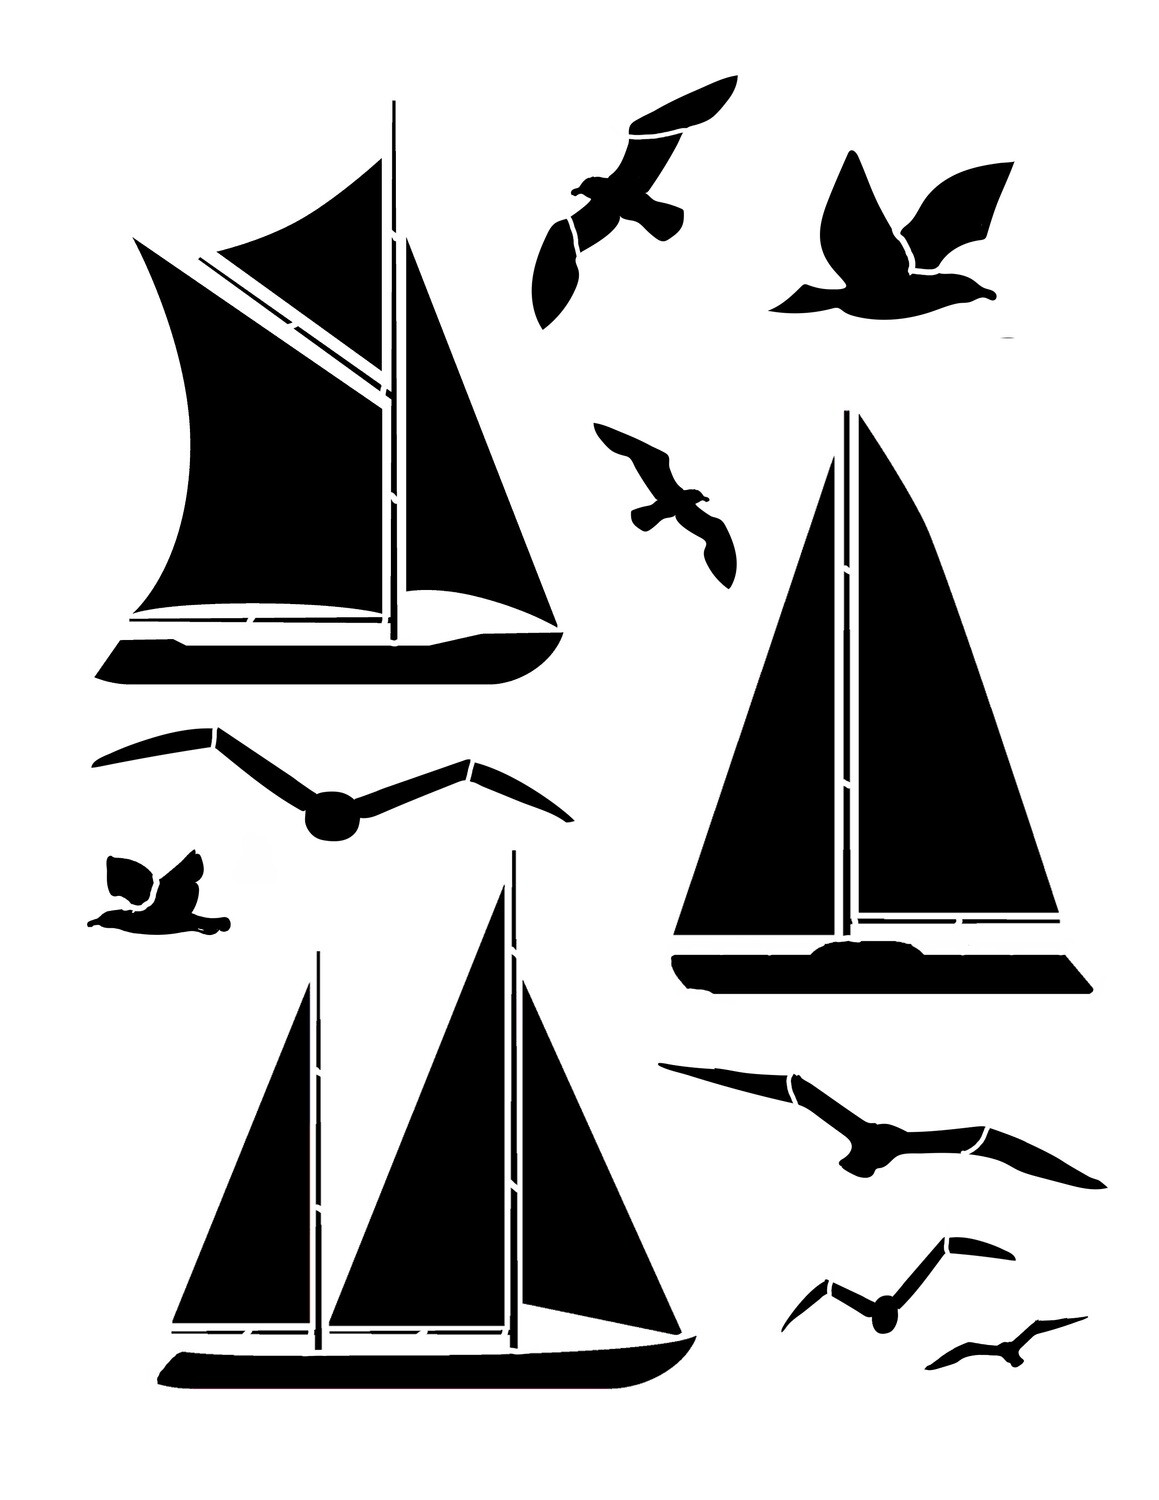 Boats and Birds Stencil